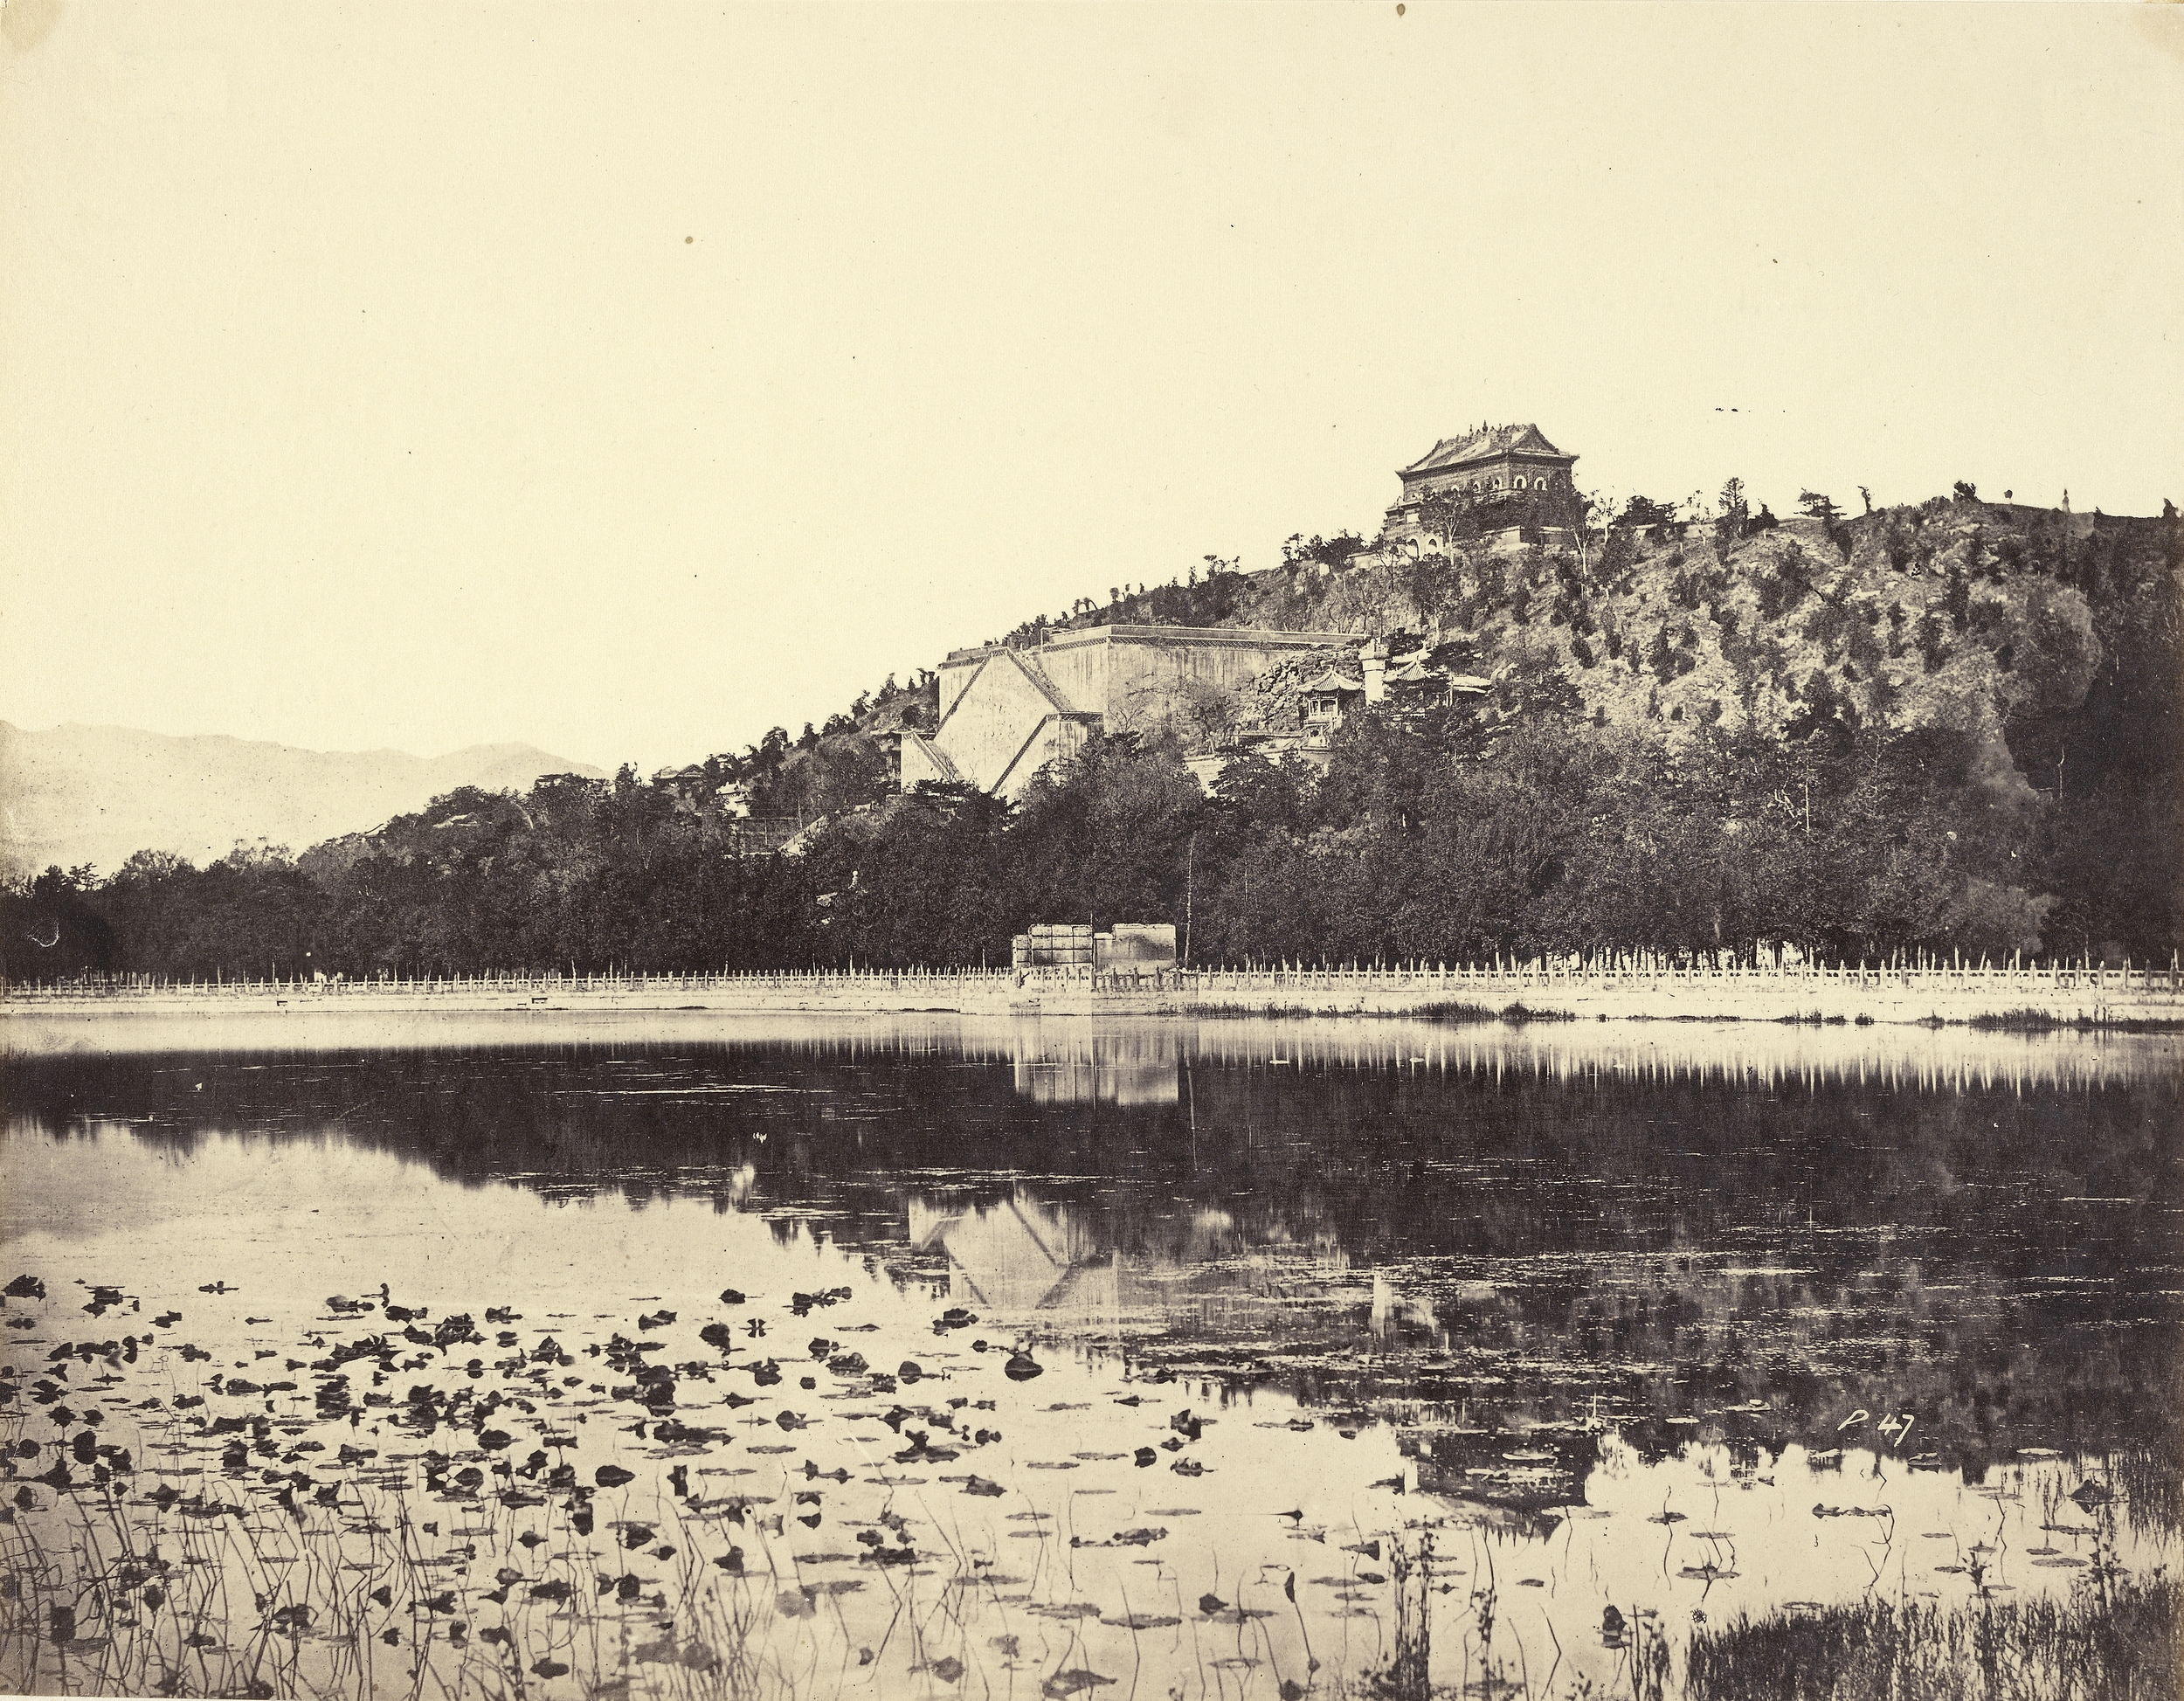 View of the Imperial Summer Palace, Yuen-Ming-Yuen, after the Burning, Taken from the Lake, Peking, 1860, Albumen silver print, 23.2 x 29.8 cm. The J. Paul Getty Museum, Los Angeles